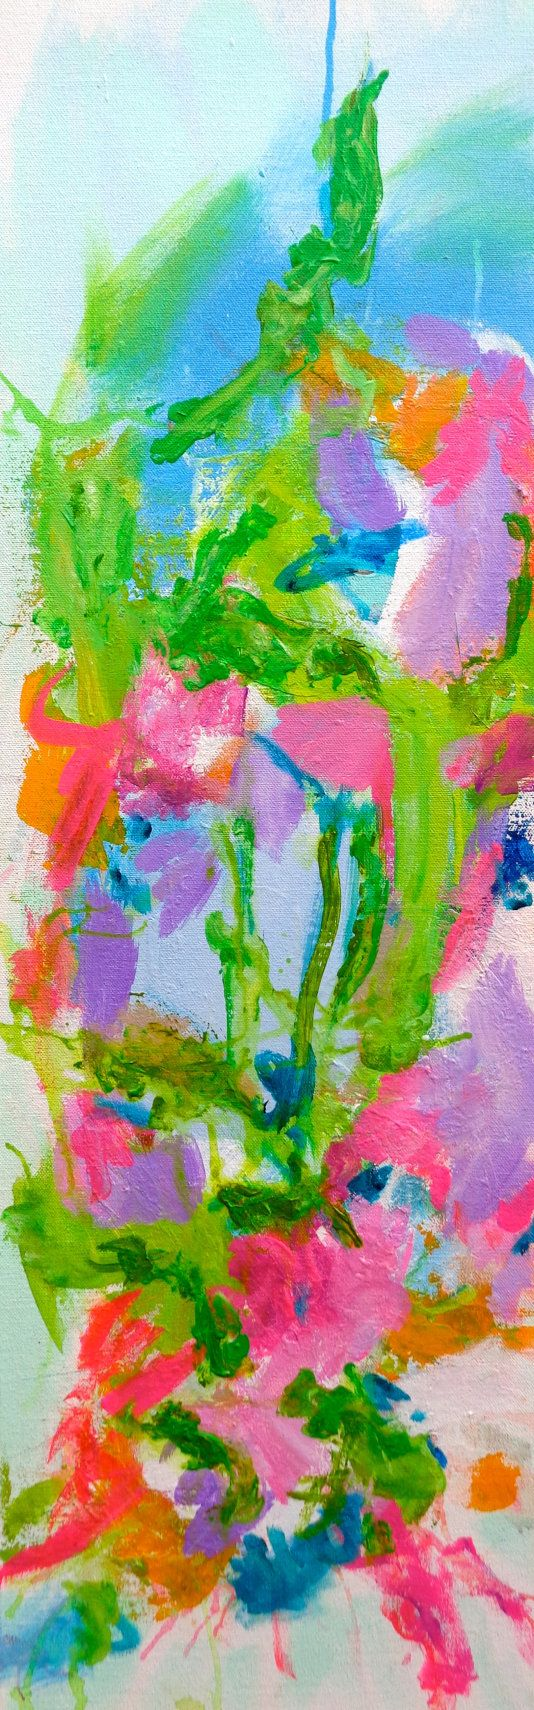 Abstract Floral Art Painting 12 X 24 Susan by susanskelleyart, $180.00